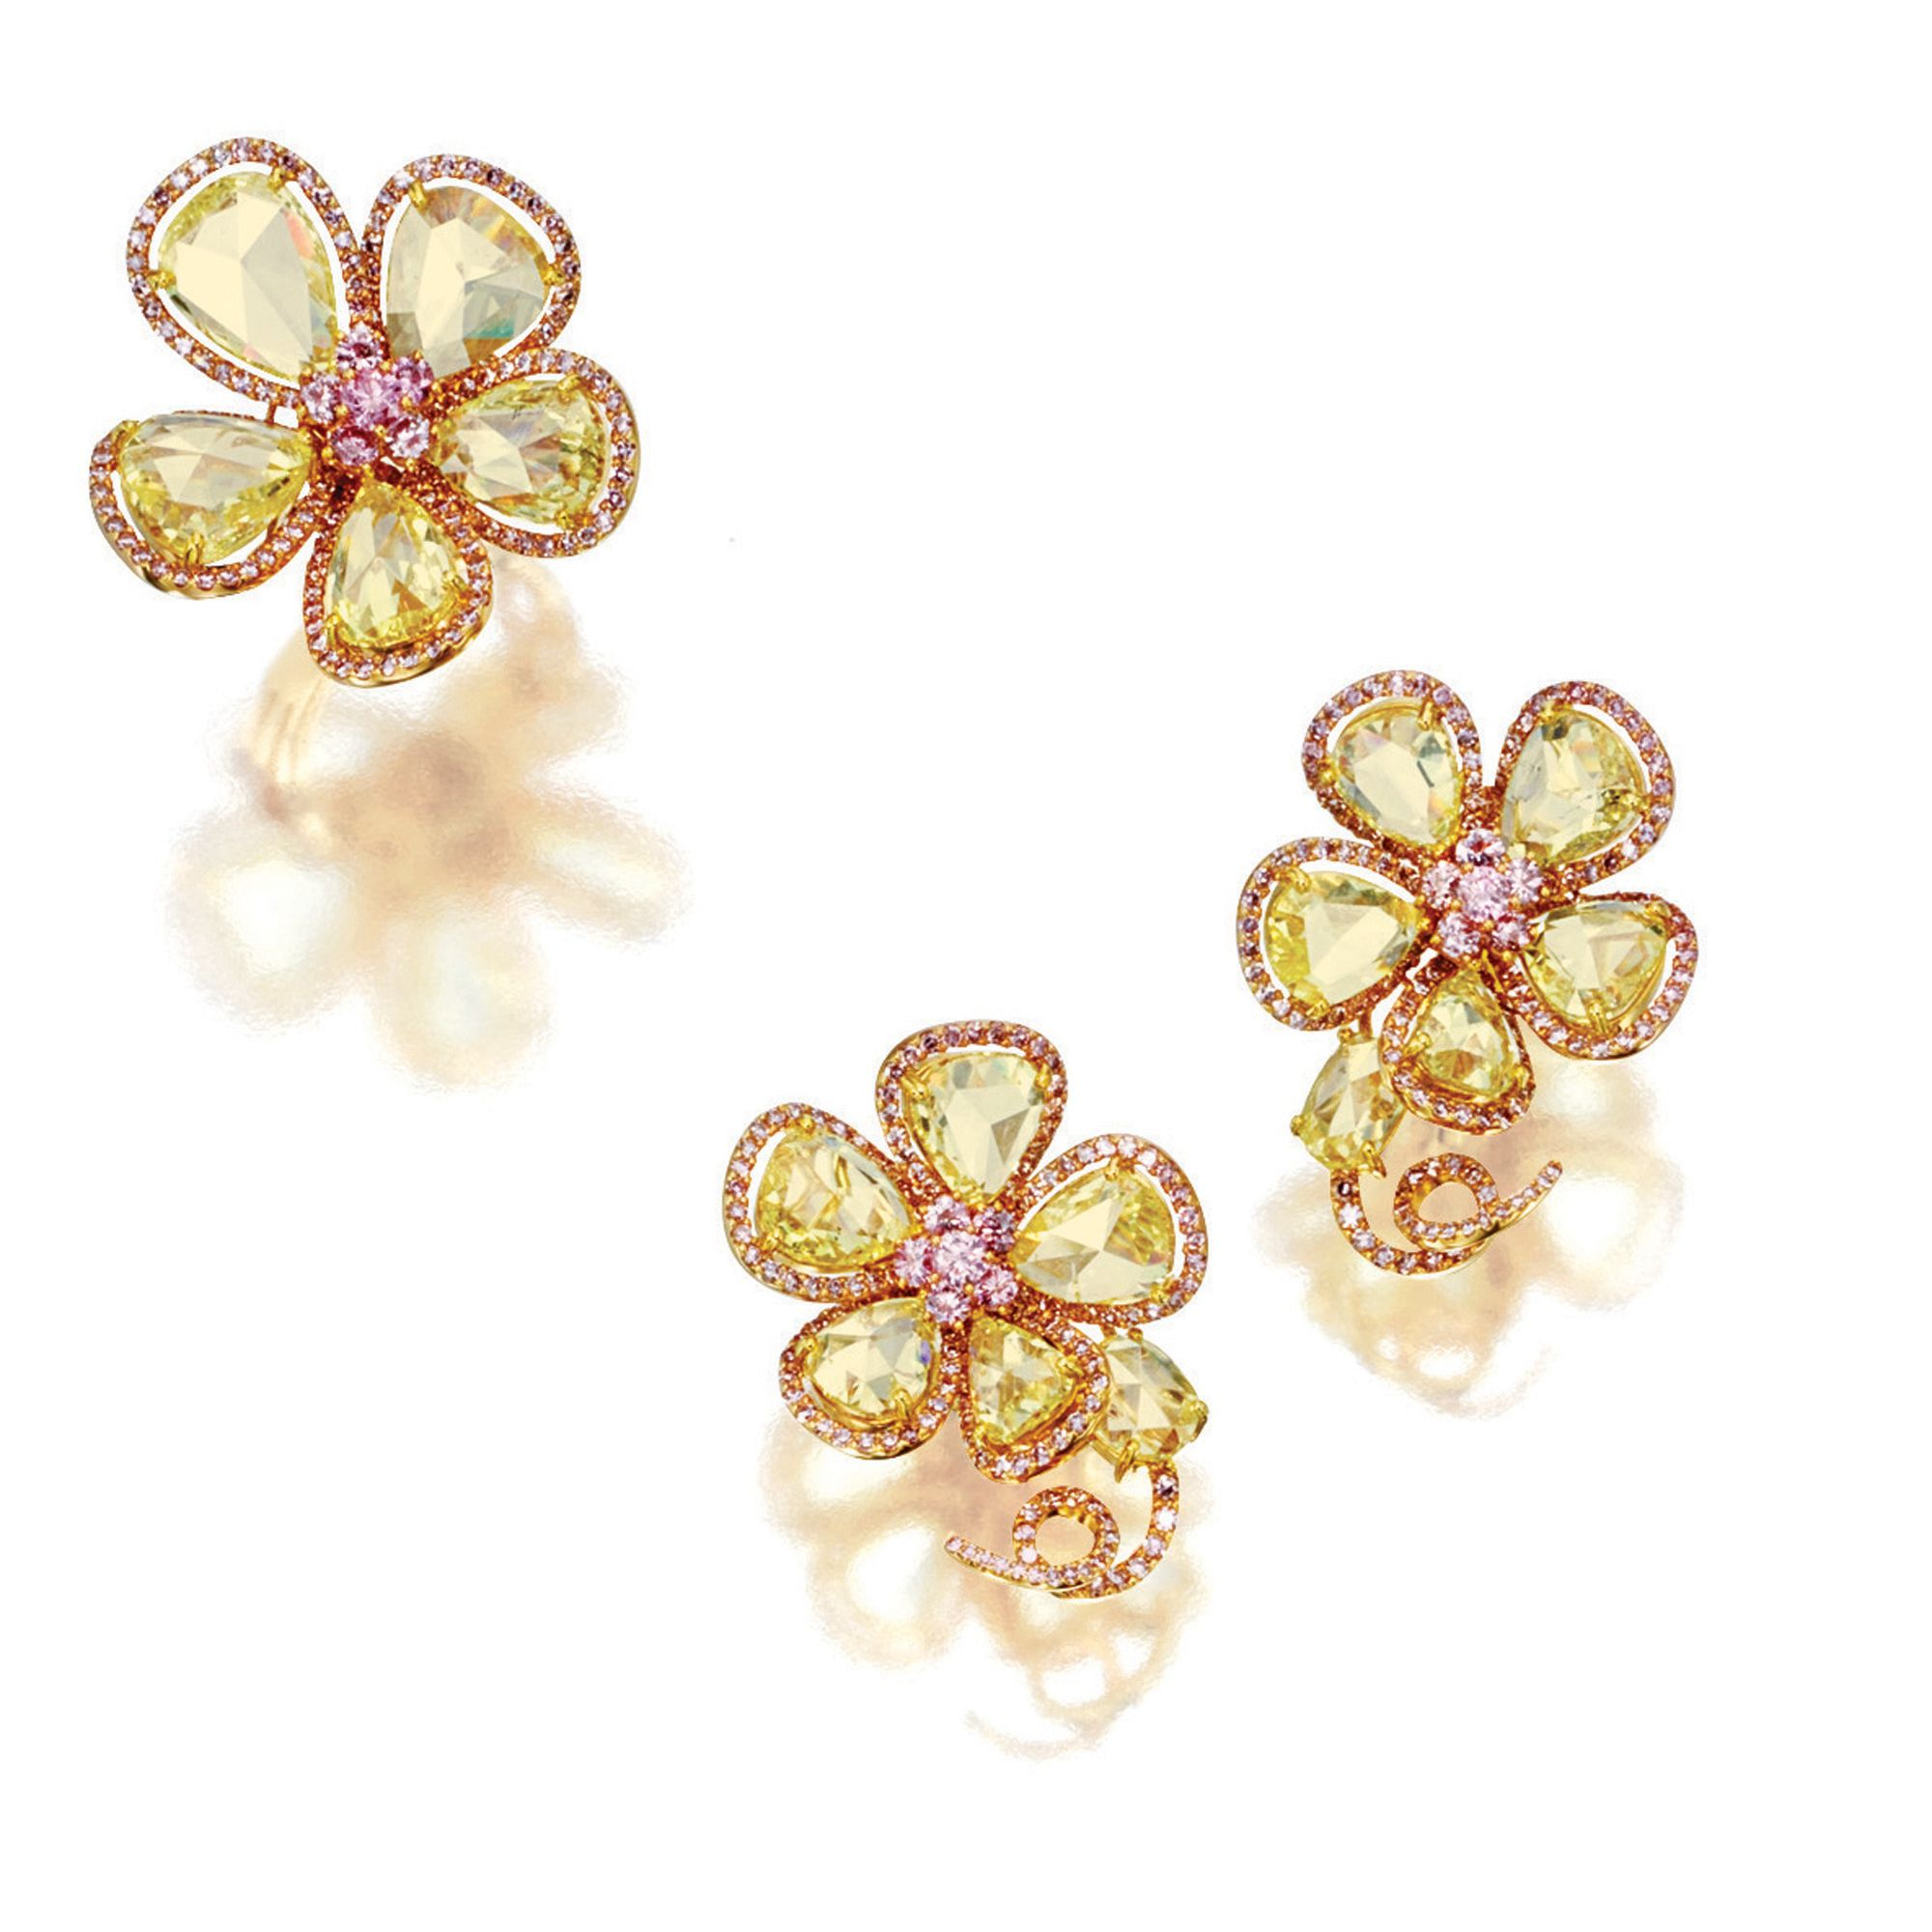 YELLOW DIAMOND AND PINK DIAMOND 'FLOWER' RING AND PAIR OF MATCHING EAR CLIPS   lot   Sotheby's